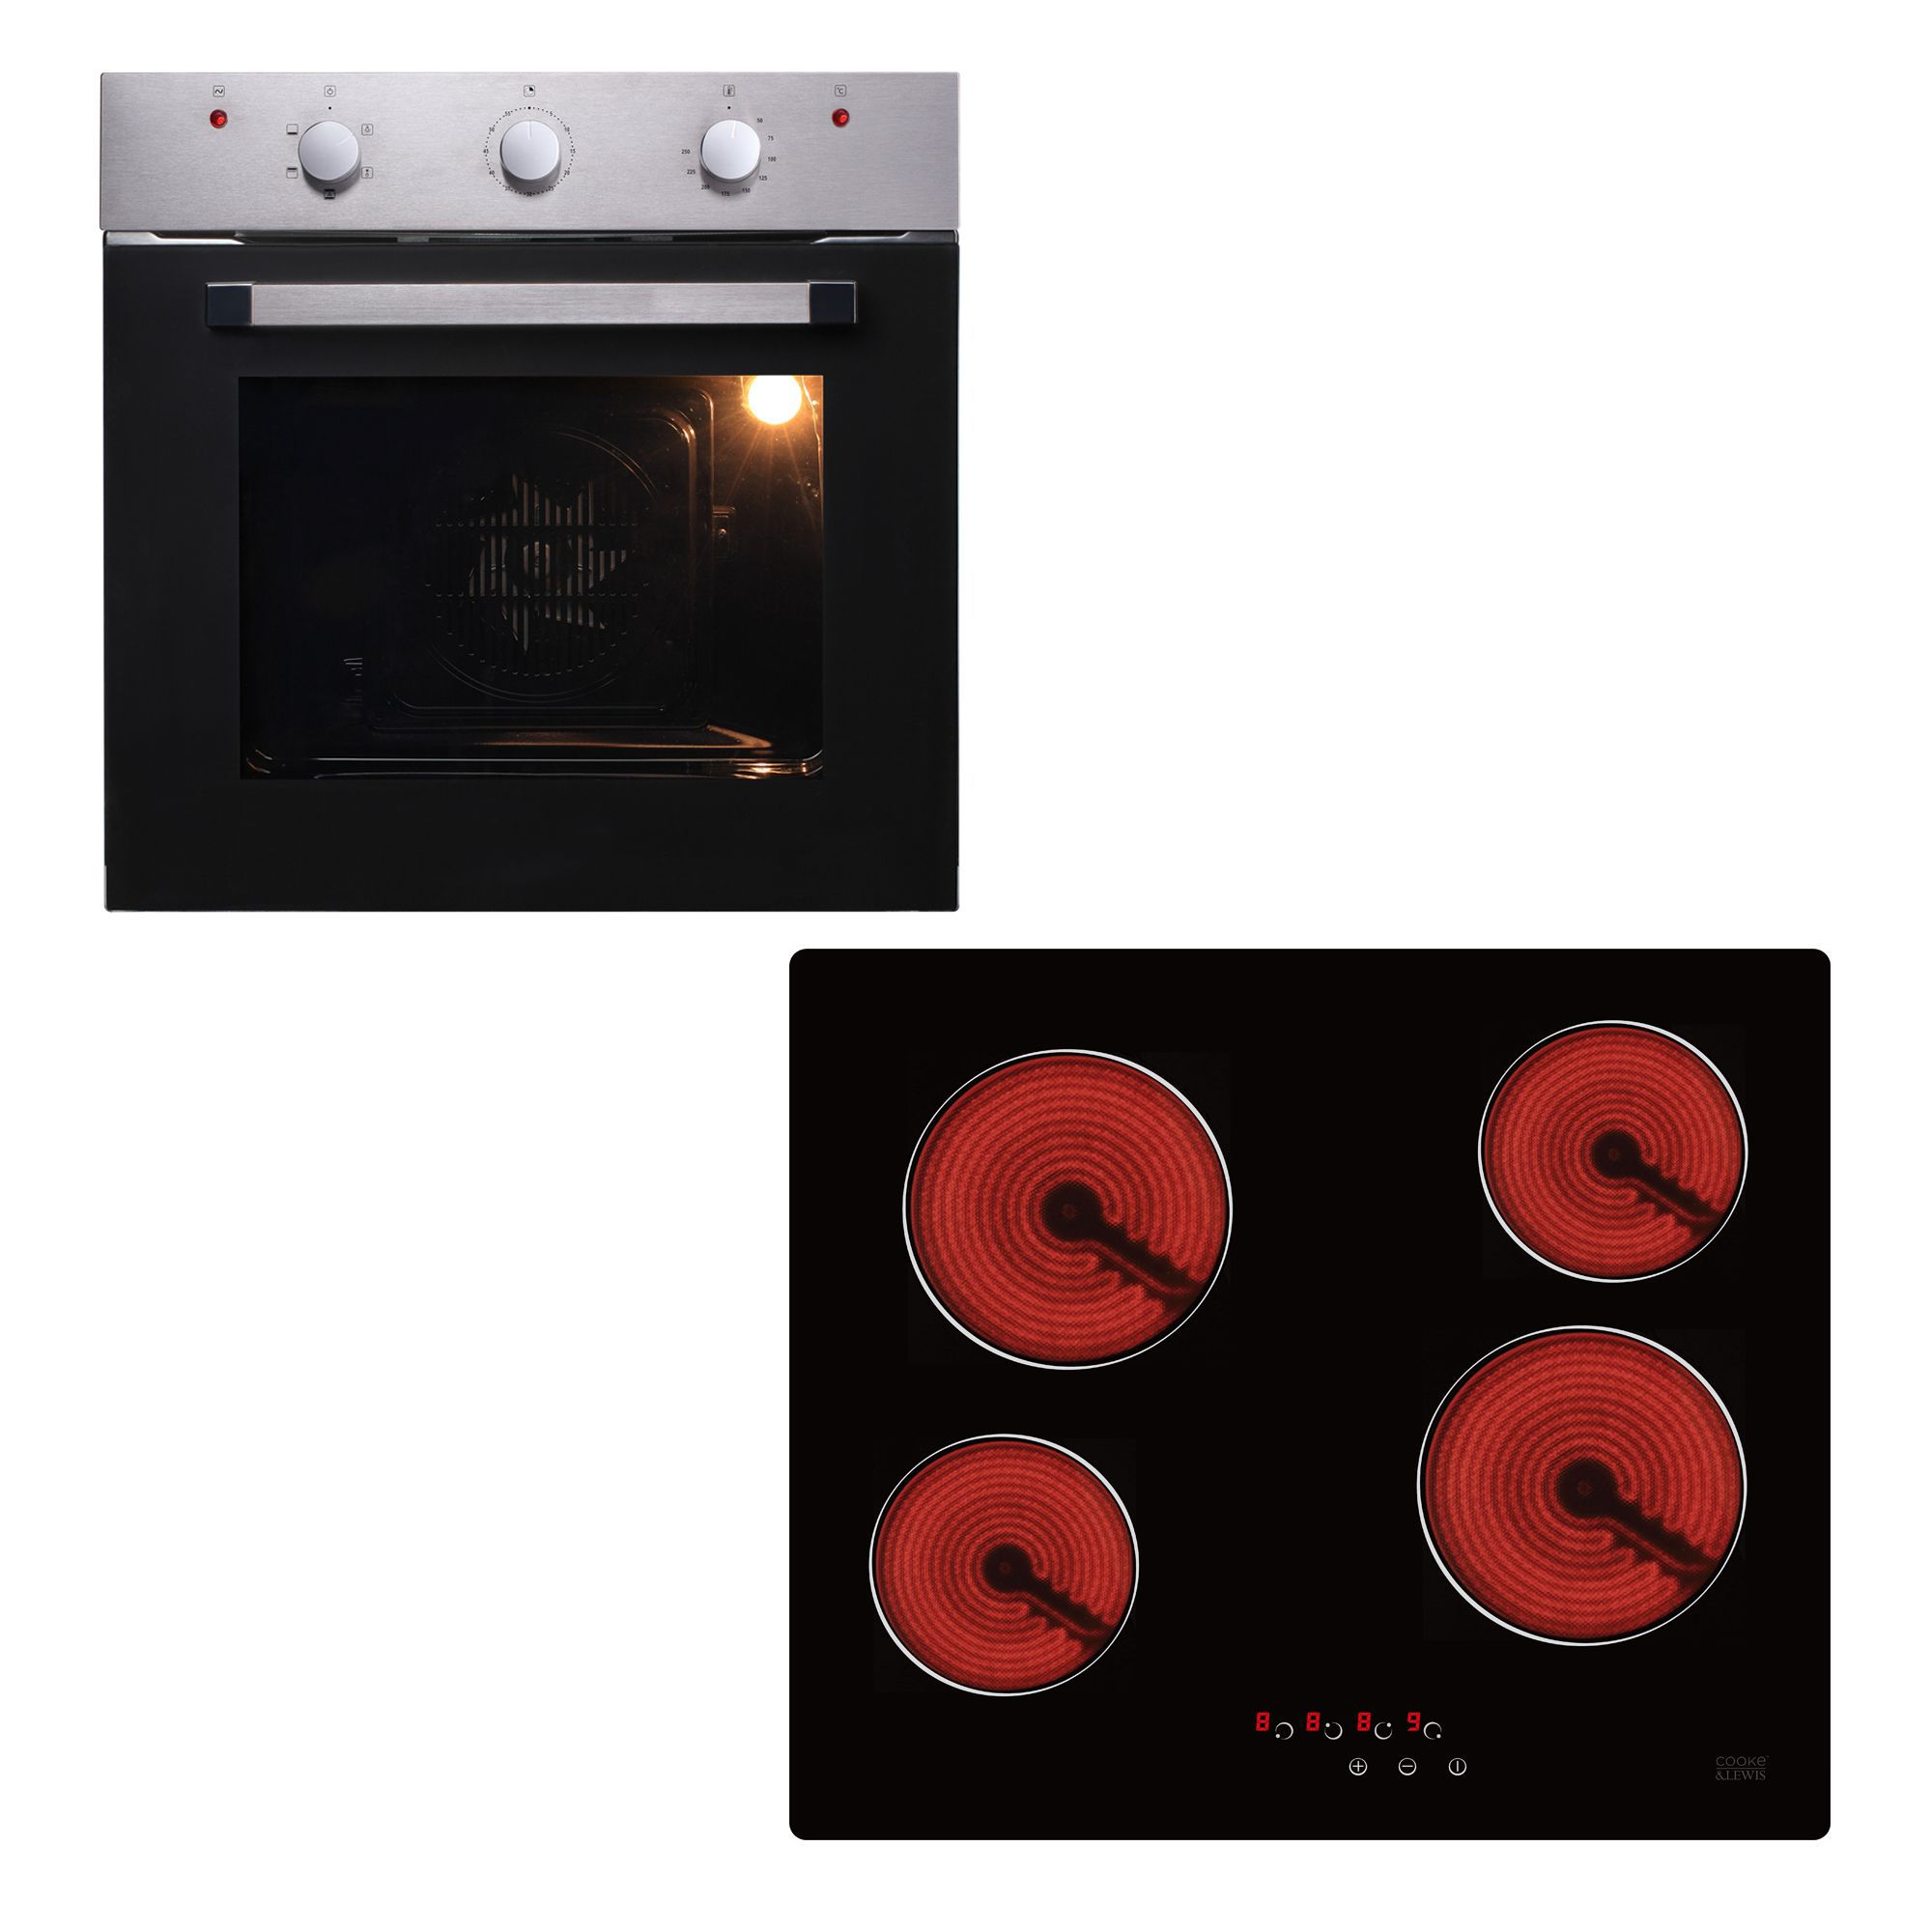 Cooke Lewis Ovfo60 Tn604a Glass Stainless Steel Single Fan Oven Ceramic Hob Pack Departments Tradepoint